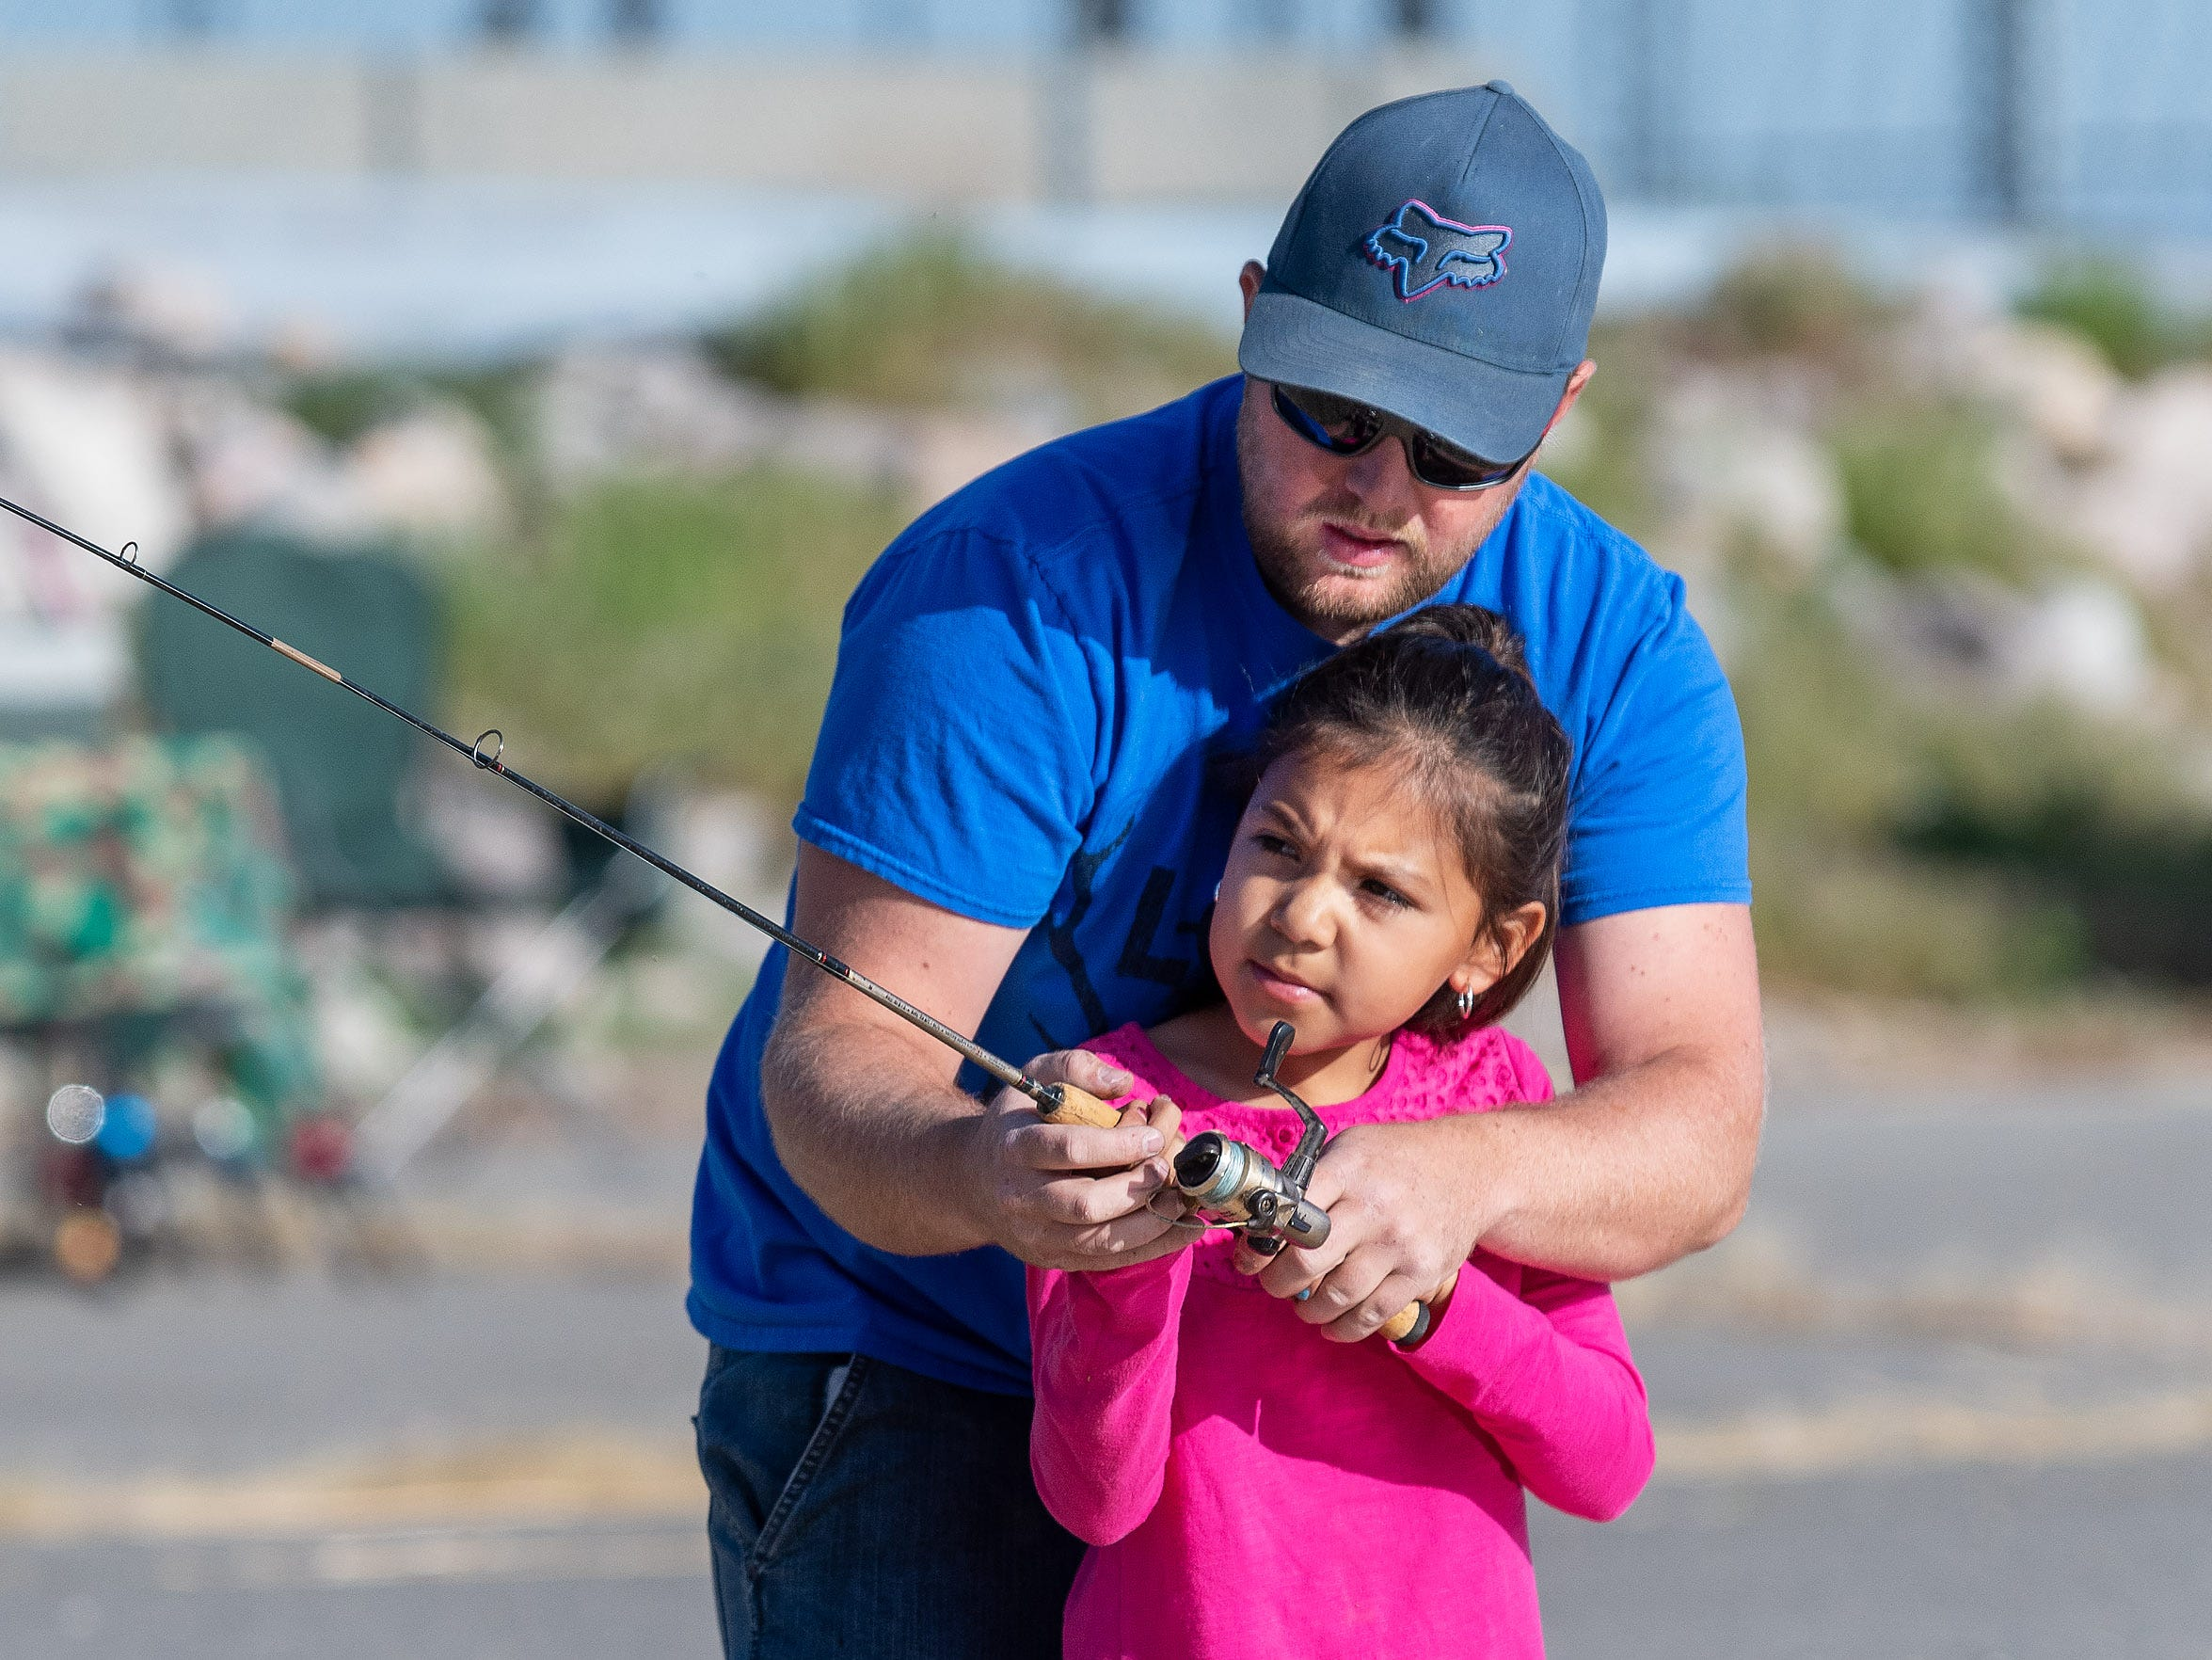 Emeilia Guerrero, 9, from Yerington, gets help casting from her stepdad Bryce Chisum.